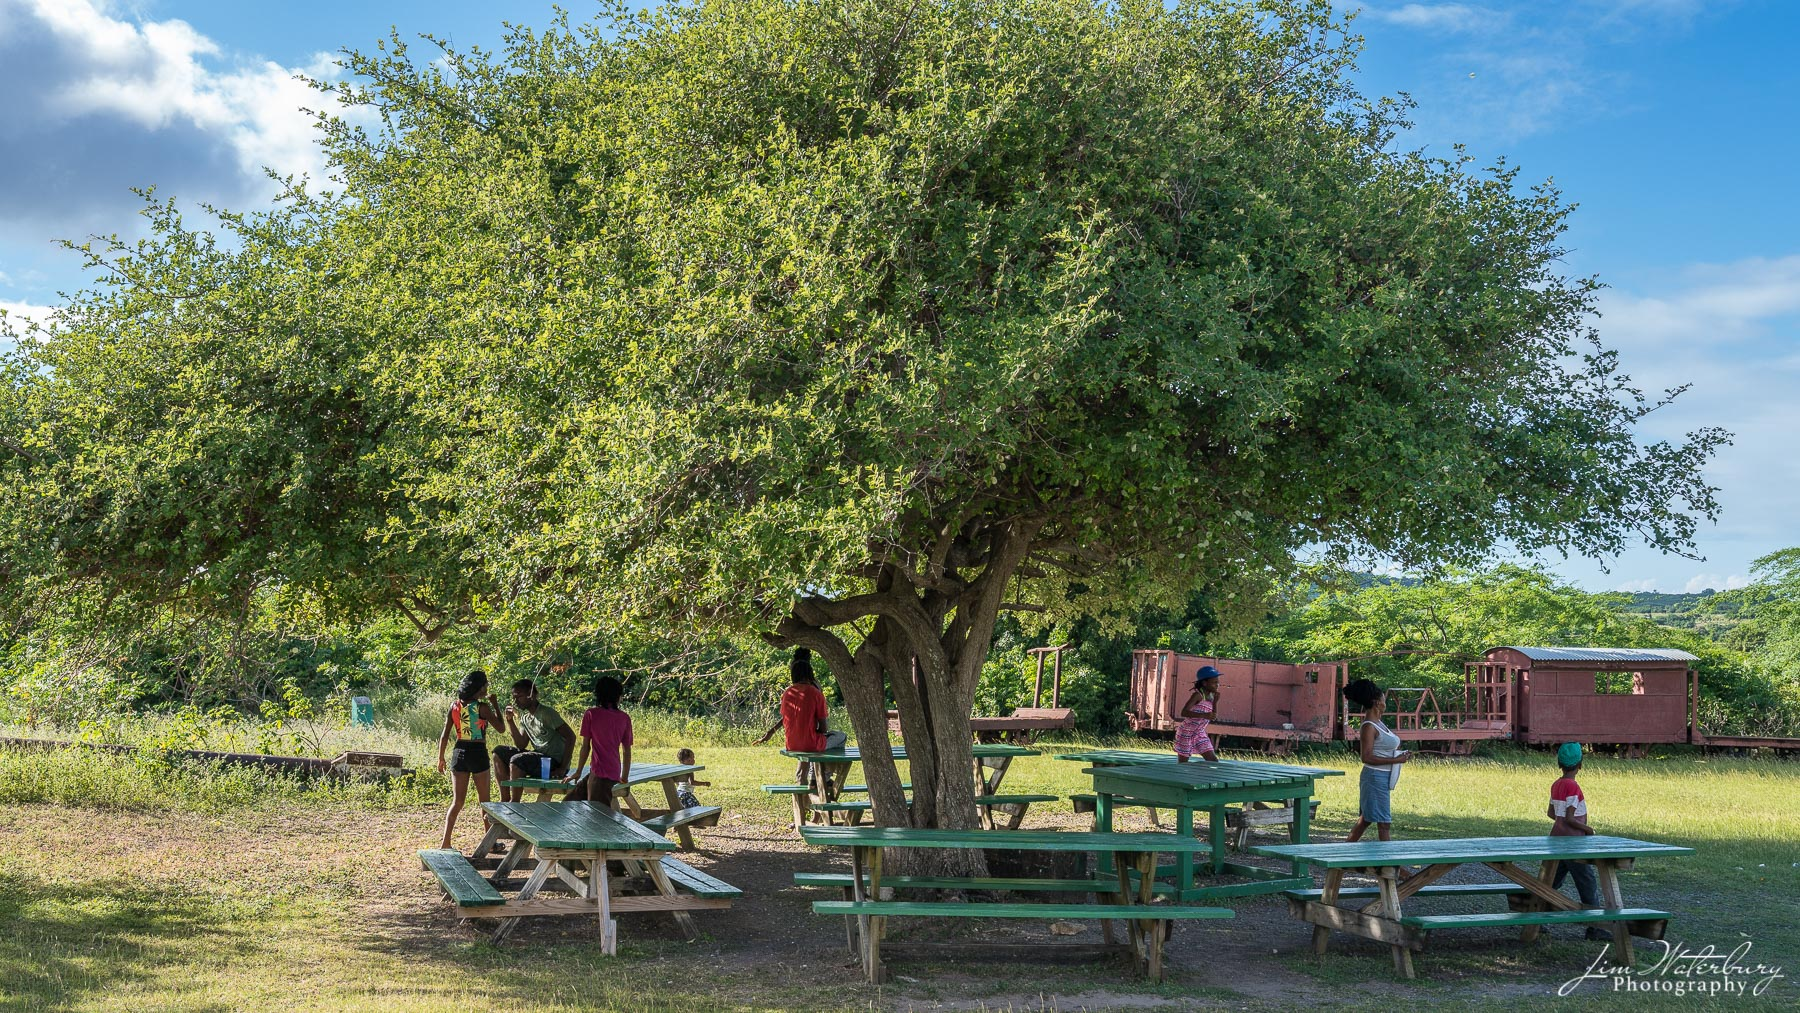 Children play around picnic tables and an old raillroad car at Betty's Hope, site of one of the earliest sugar plantations on...